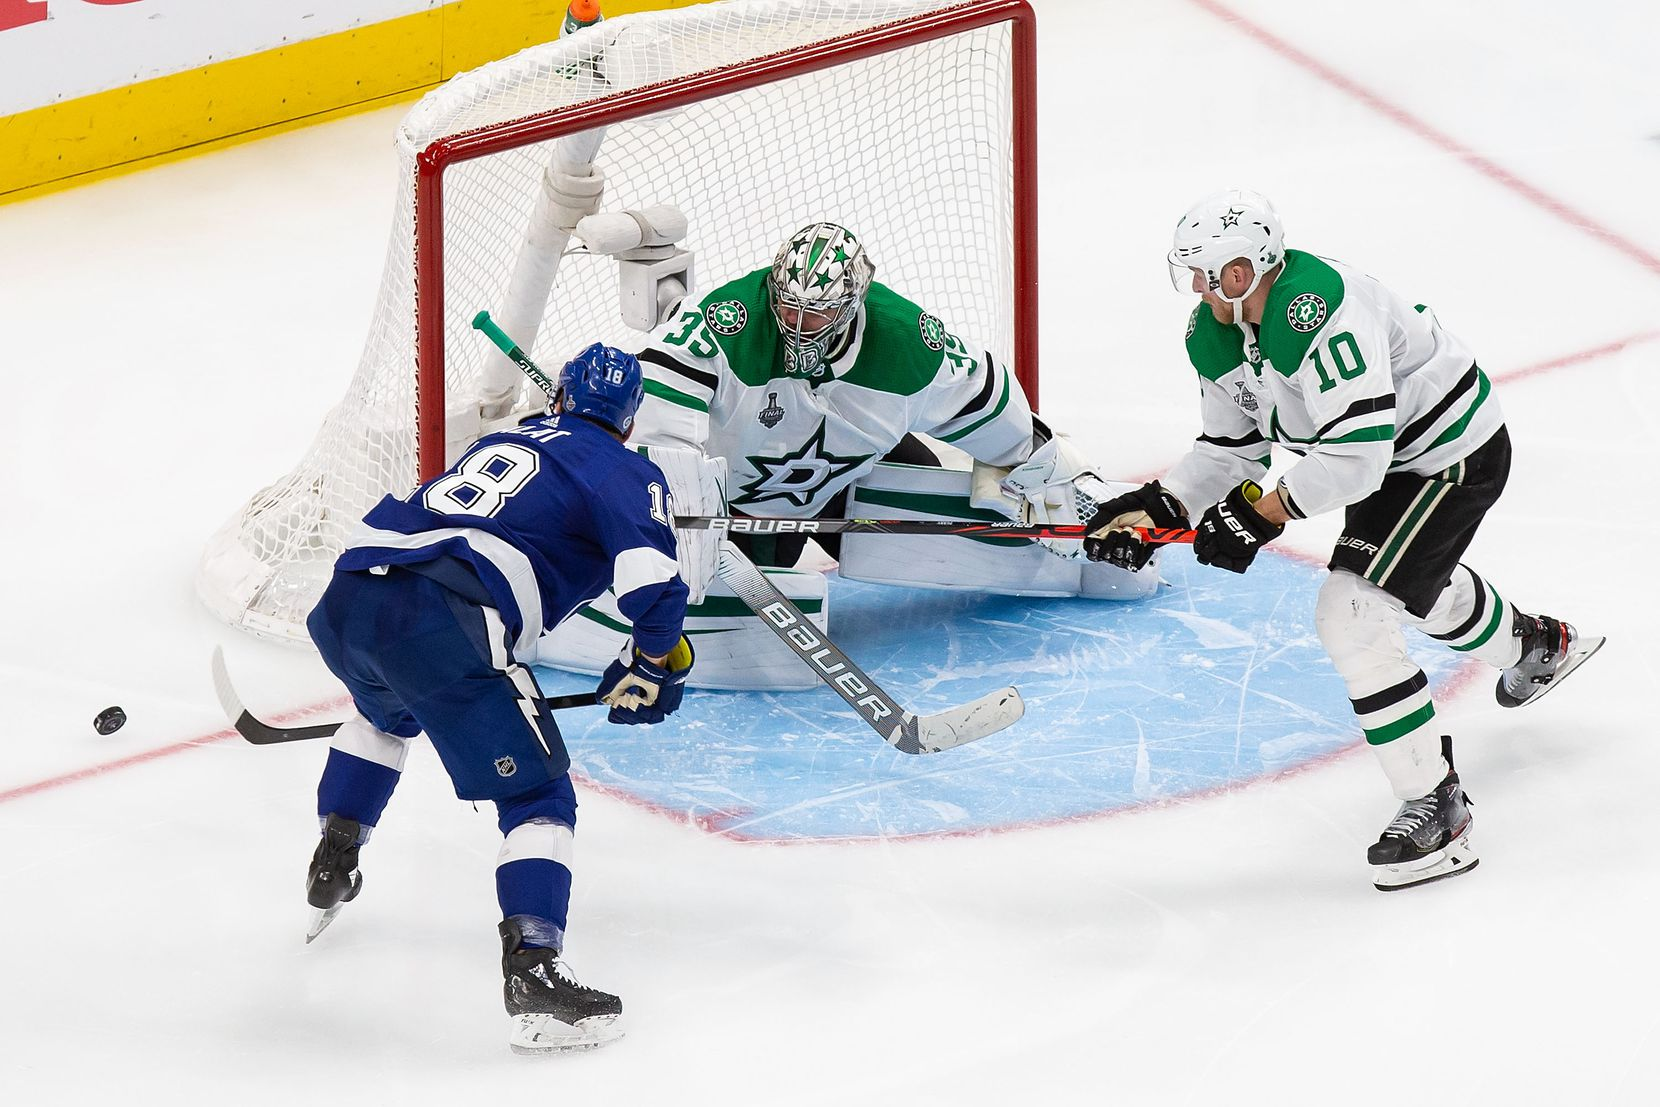 Corey Perry (10) and goaltender Anton Khudobin (35) of the Dallas Stars fend off Ondrej Palat (18) of the Tampa Bay Lightning during Game Two of the Stanley Cup Final at Rogers Place in Edmonton, Alberta, Canada on Monday, September 21, 2020. (Codie McLachlan/Special Contributor)